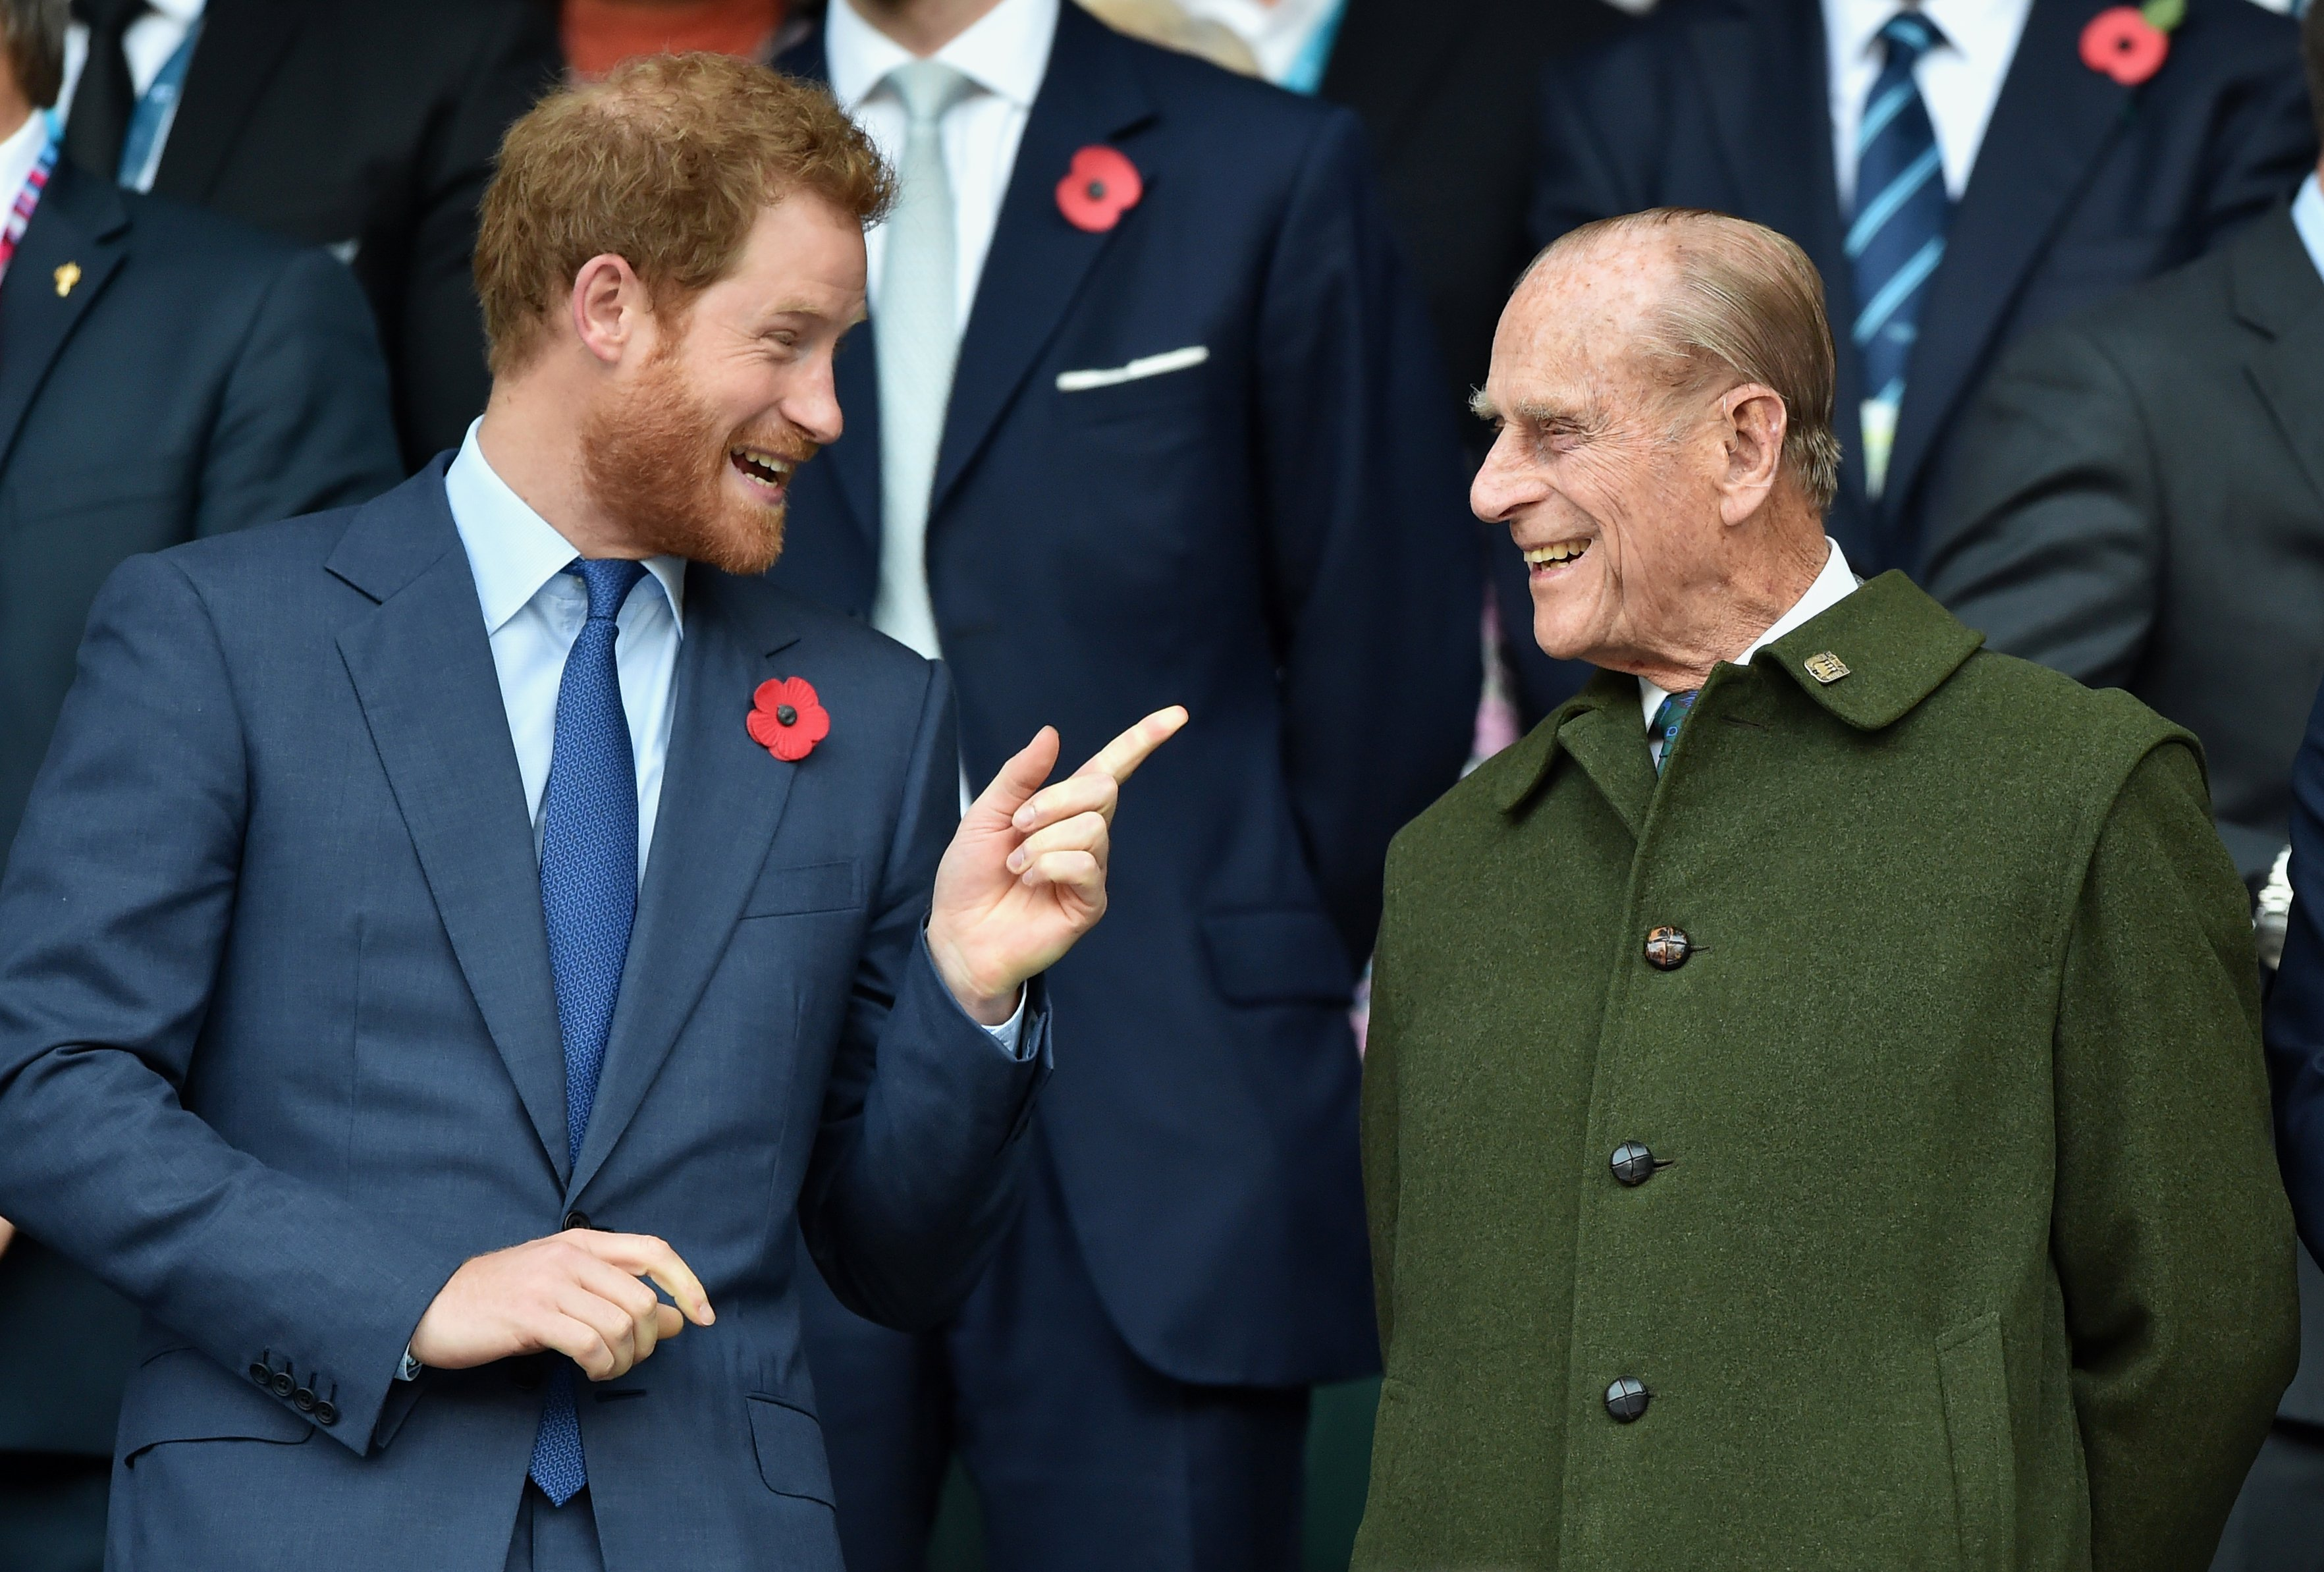 A captured moment between Prince Harry and his grandfather Prince Philip | Photo: Getty Images